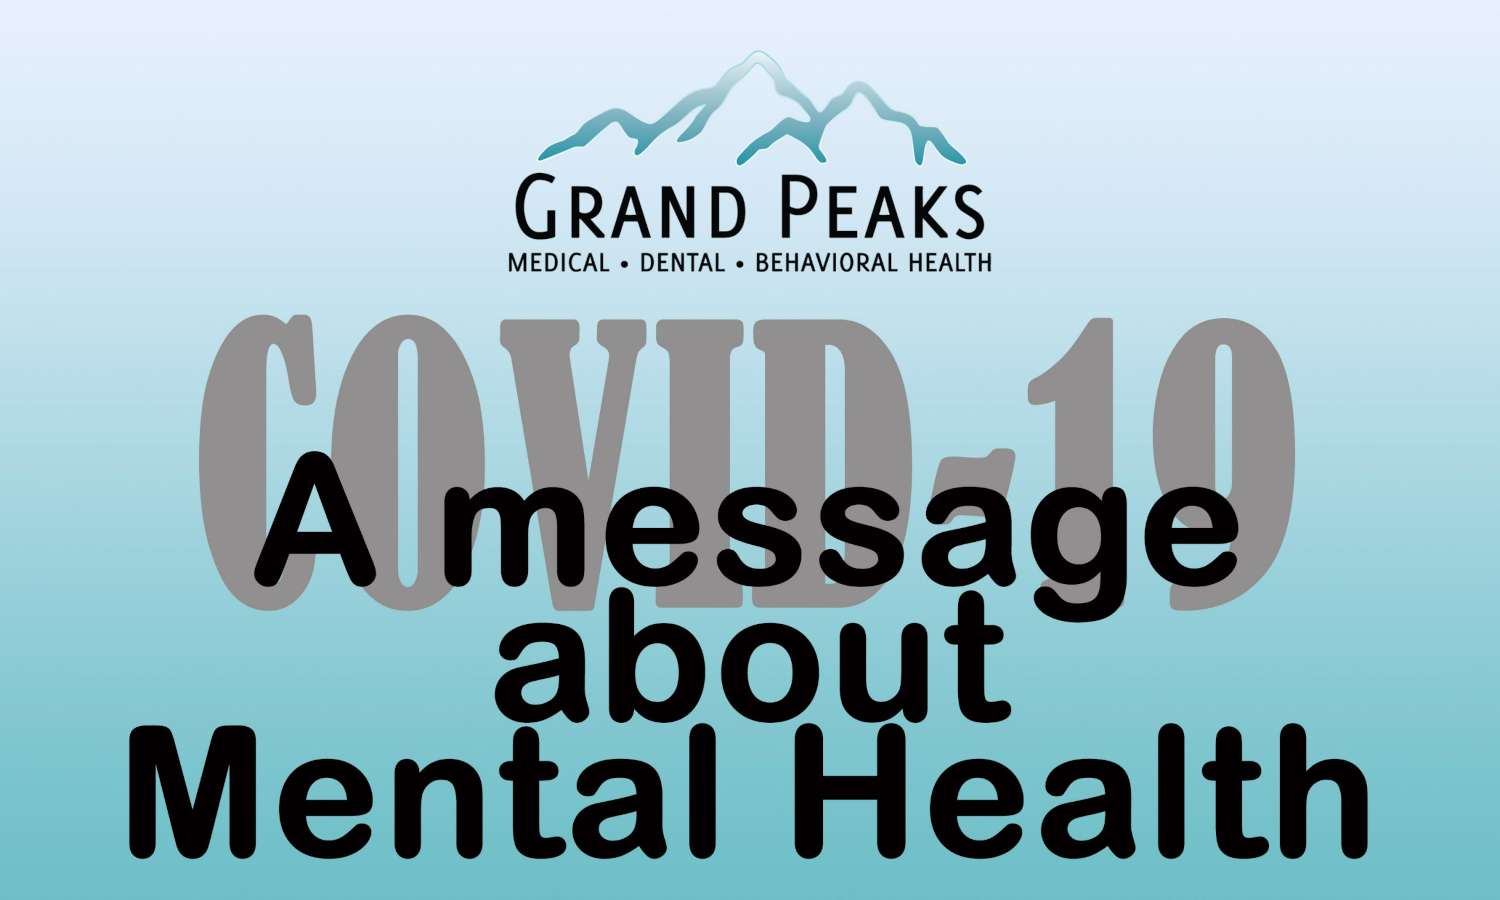 a message about mental Health